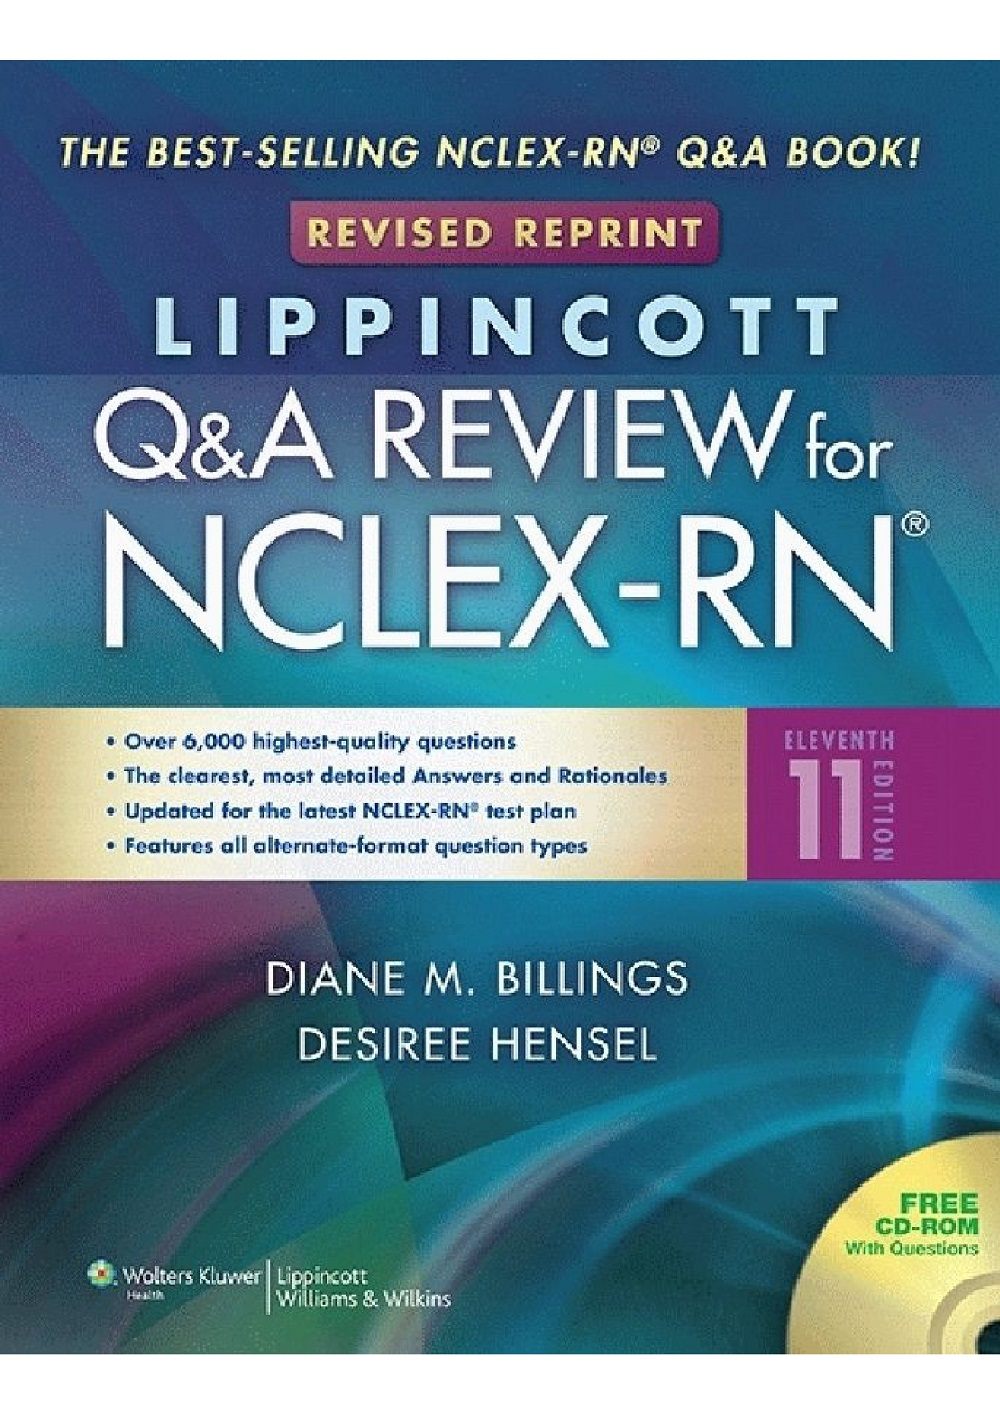 Lippincott Q&A Review for NCLEX-RN, 11th Edition 2015